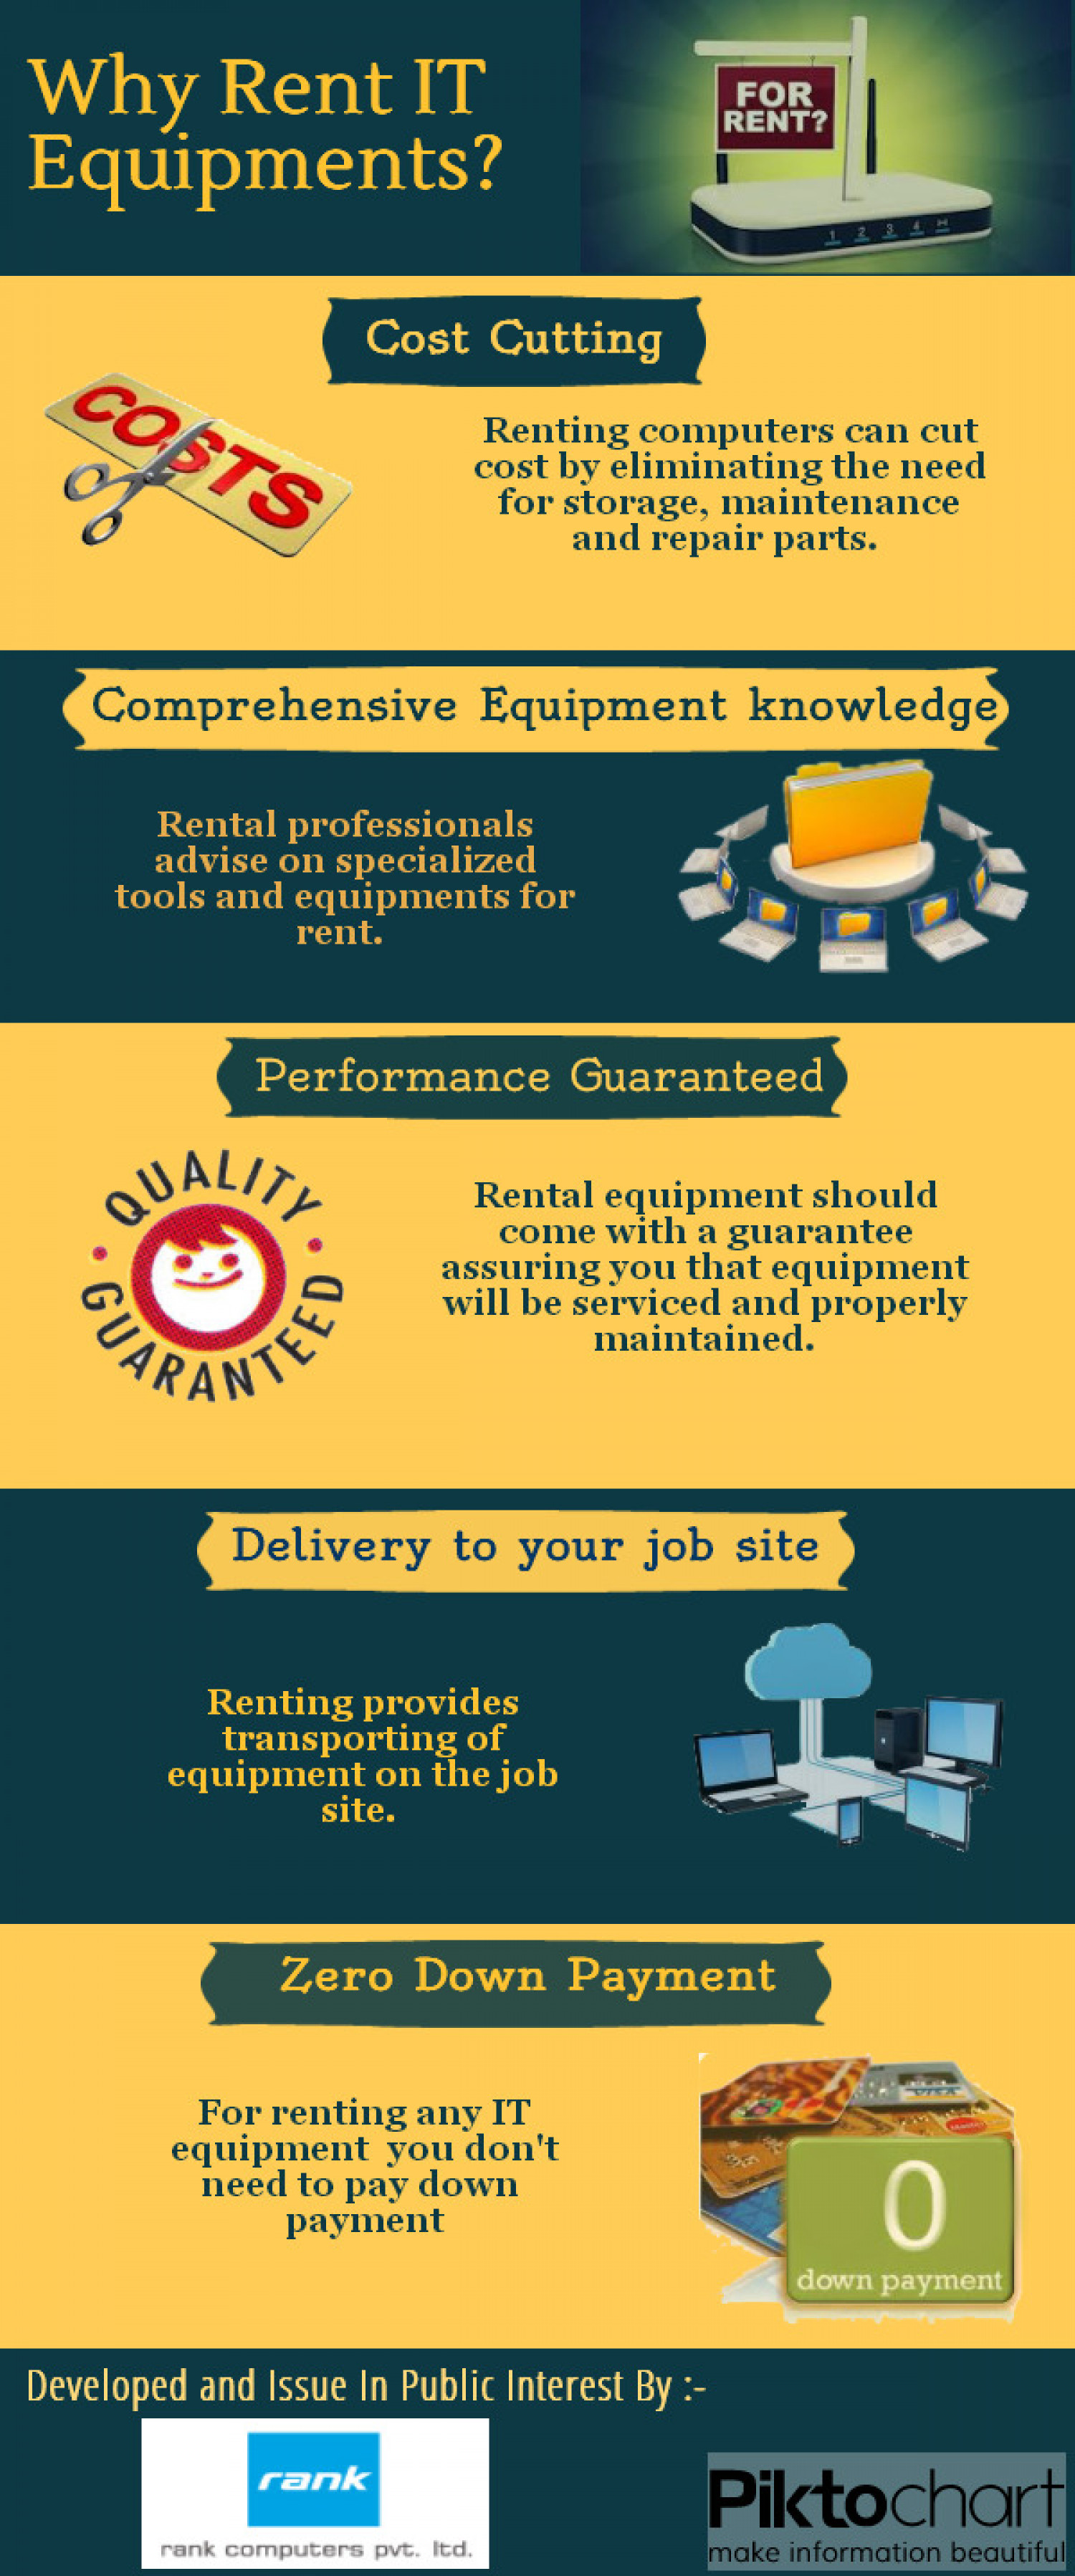 Why Rent IT Equipments? Infographic